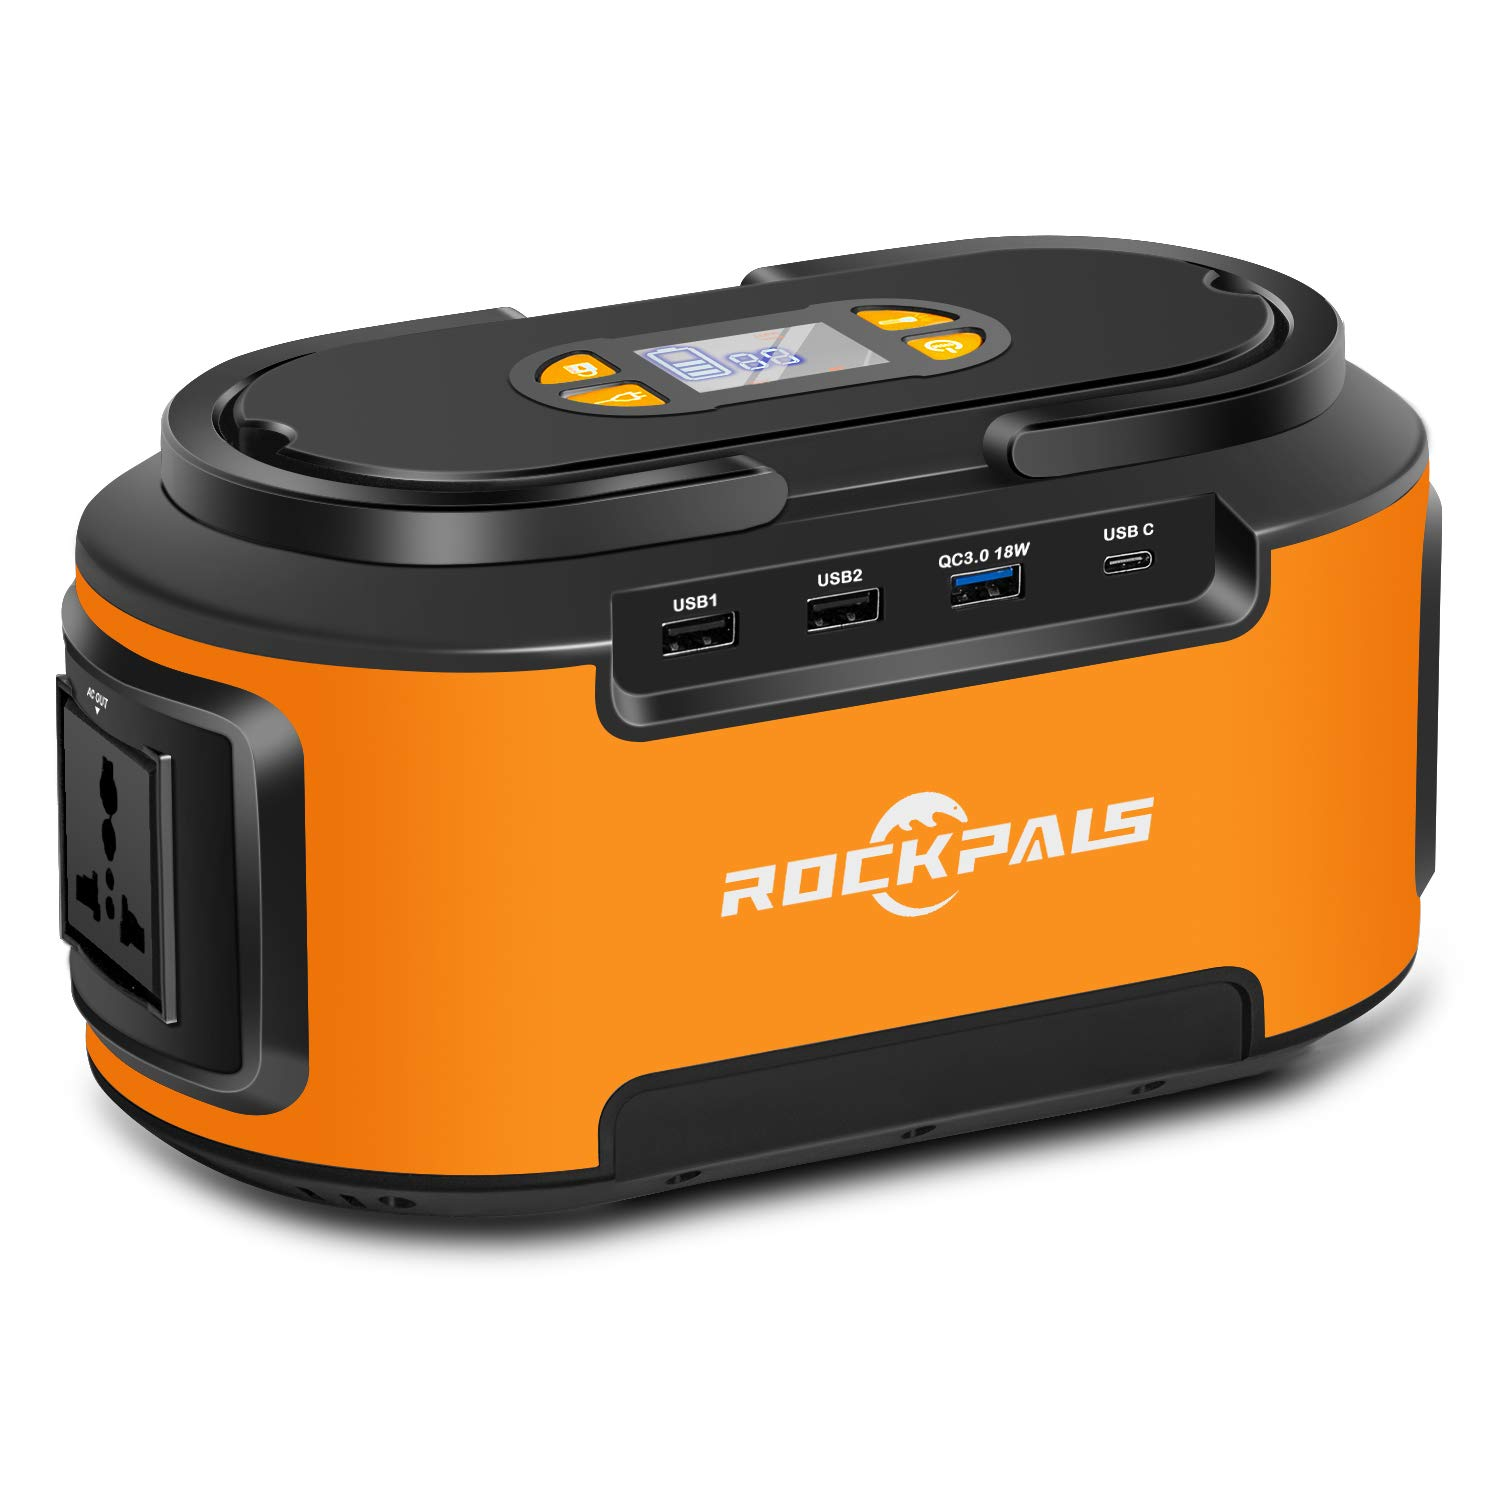 ROCKPALS Portable Power Station, 222Wh Gas Free Generator, 60000 Lithium Power Supply with 110V 200W AC Outlet, QC3.0 USB,12V DC Ports, Solar Generator for CPAP Outdoors Camping Travel Fishing Hunt